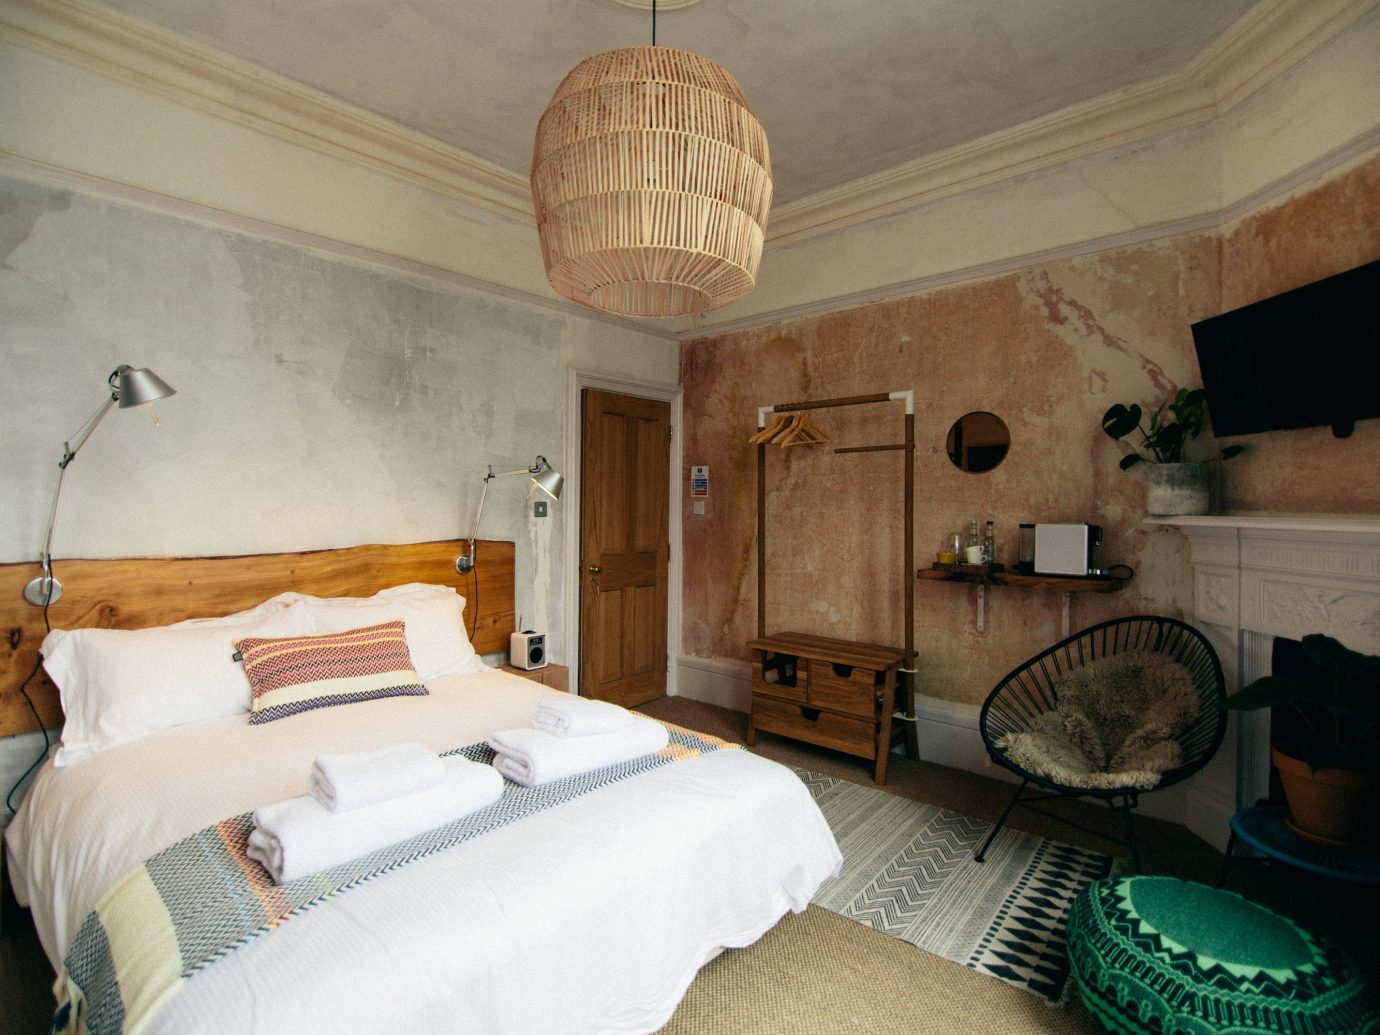 Boutique Hotels Budget Hotels London indoor wall room property bed house building estate home cottage Bedroom interior design floor real estate living room Suite apartment mansion